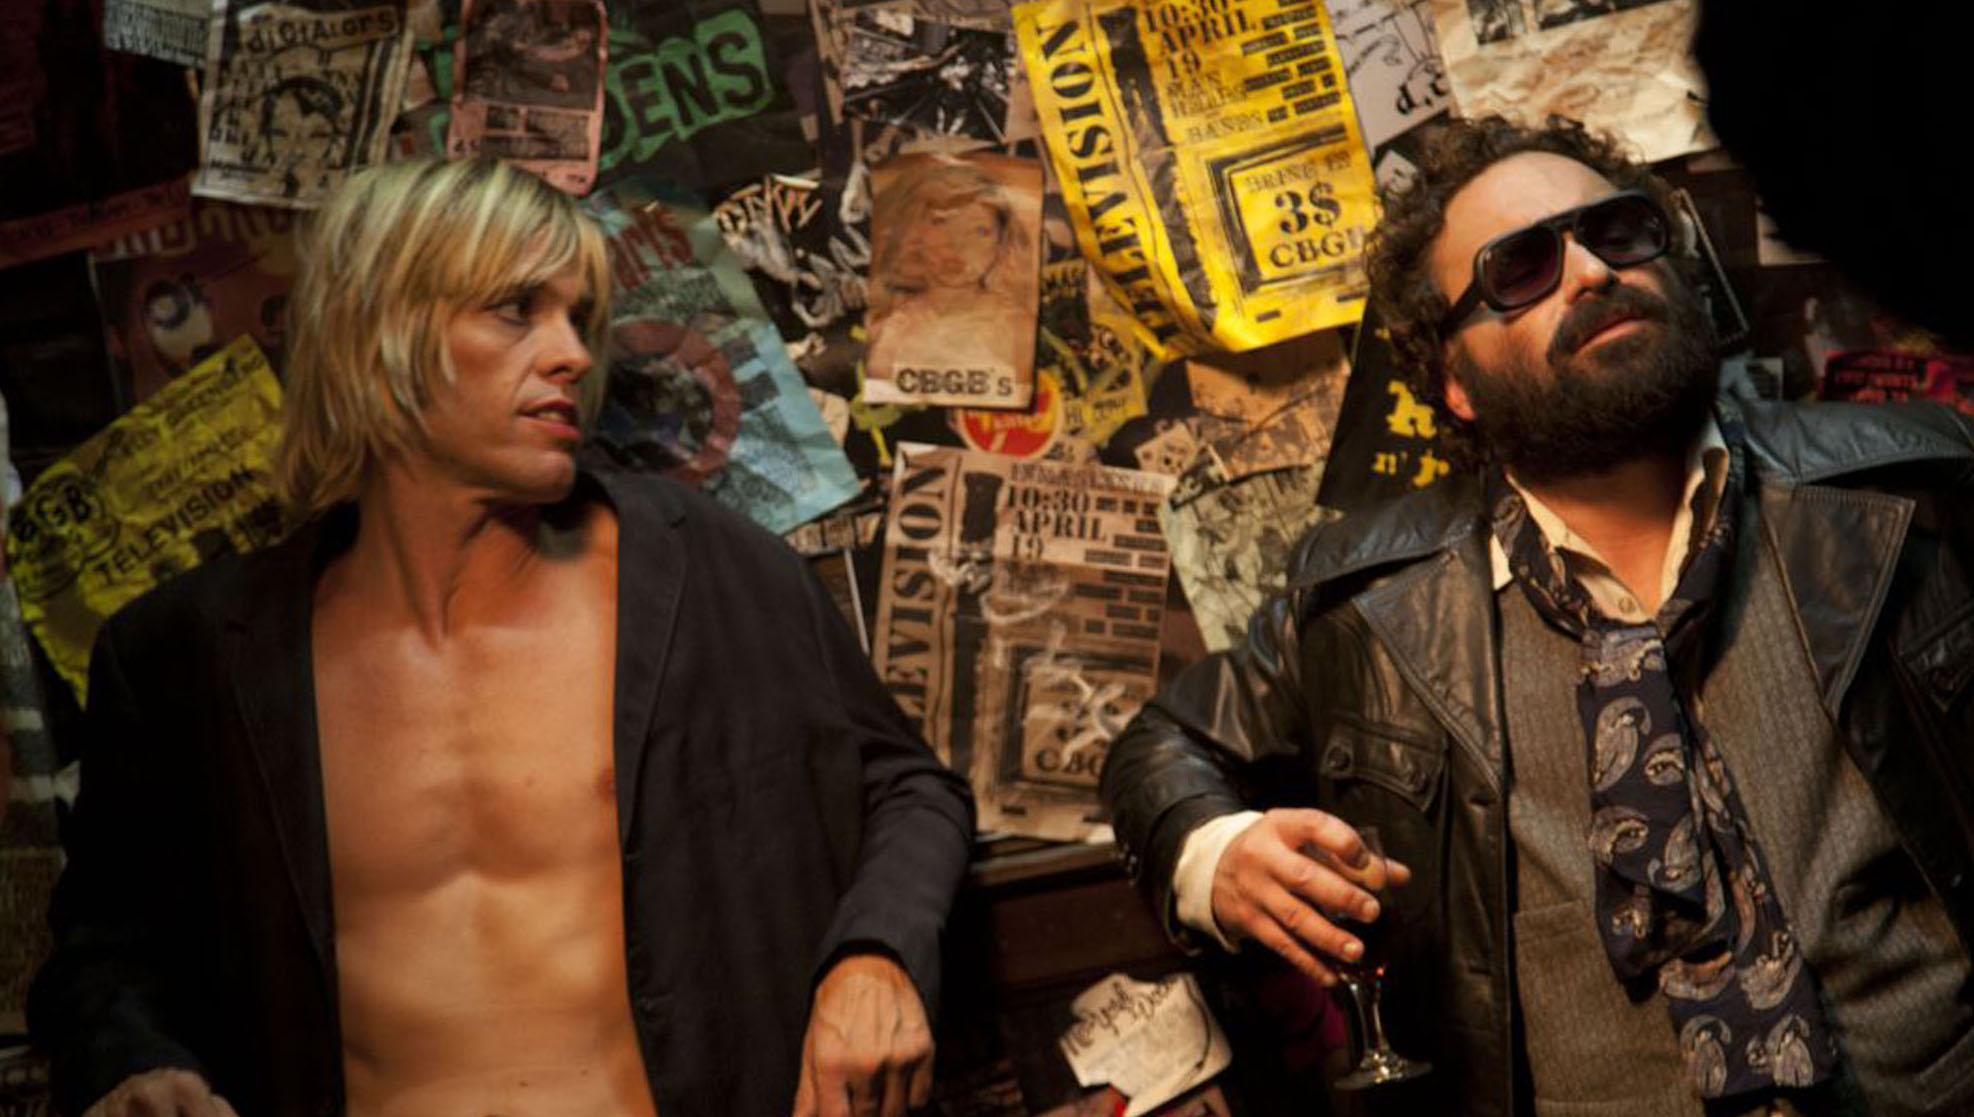 Lifeless 'CBGB' More Junk Than Punk - Front Row Features